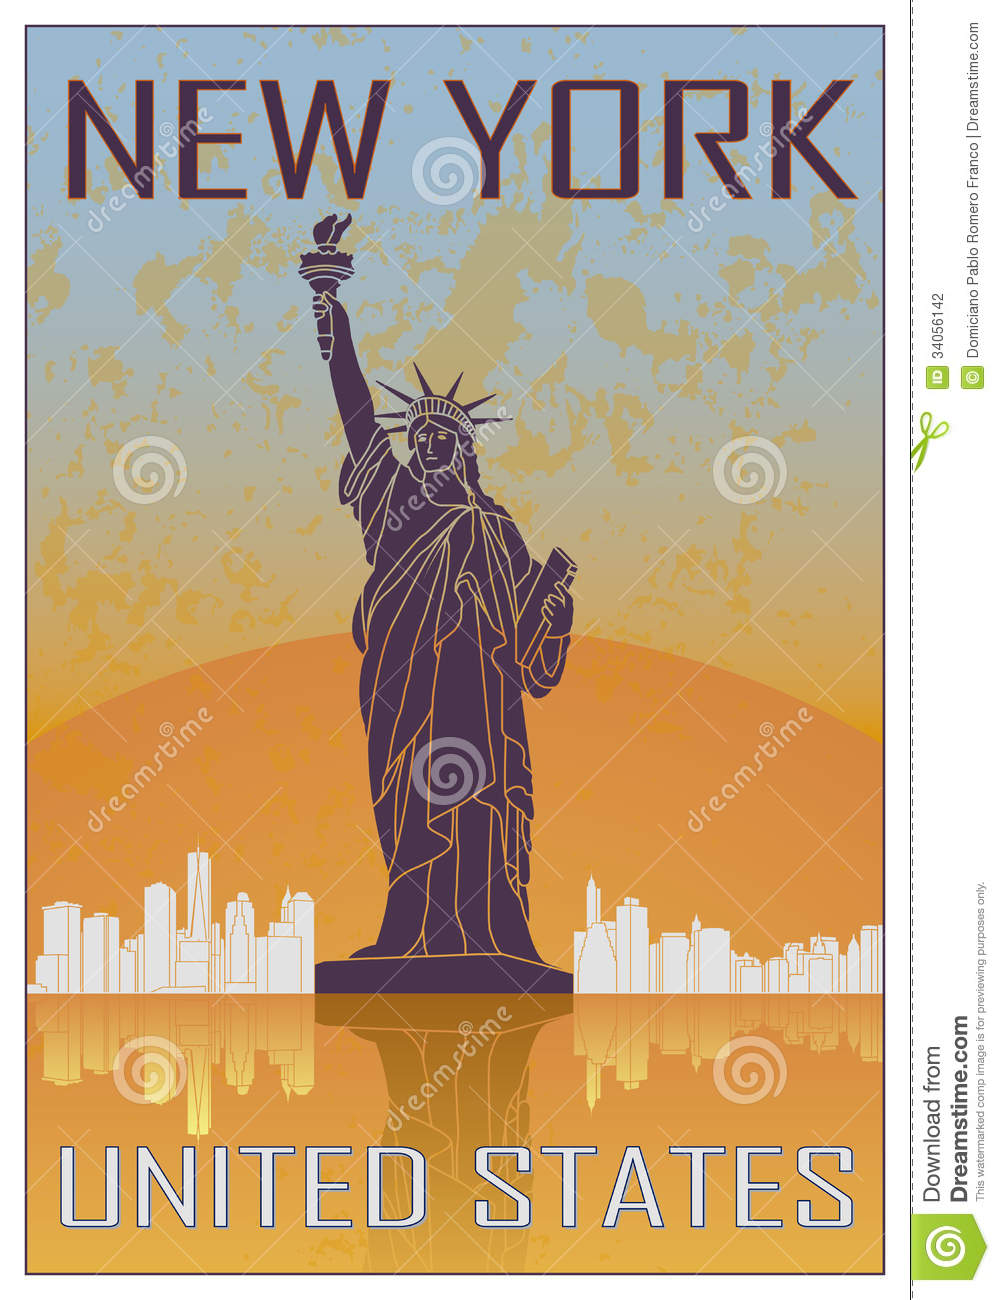 New York Vintage Poster Stock Photography Image 34056142